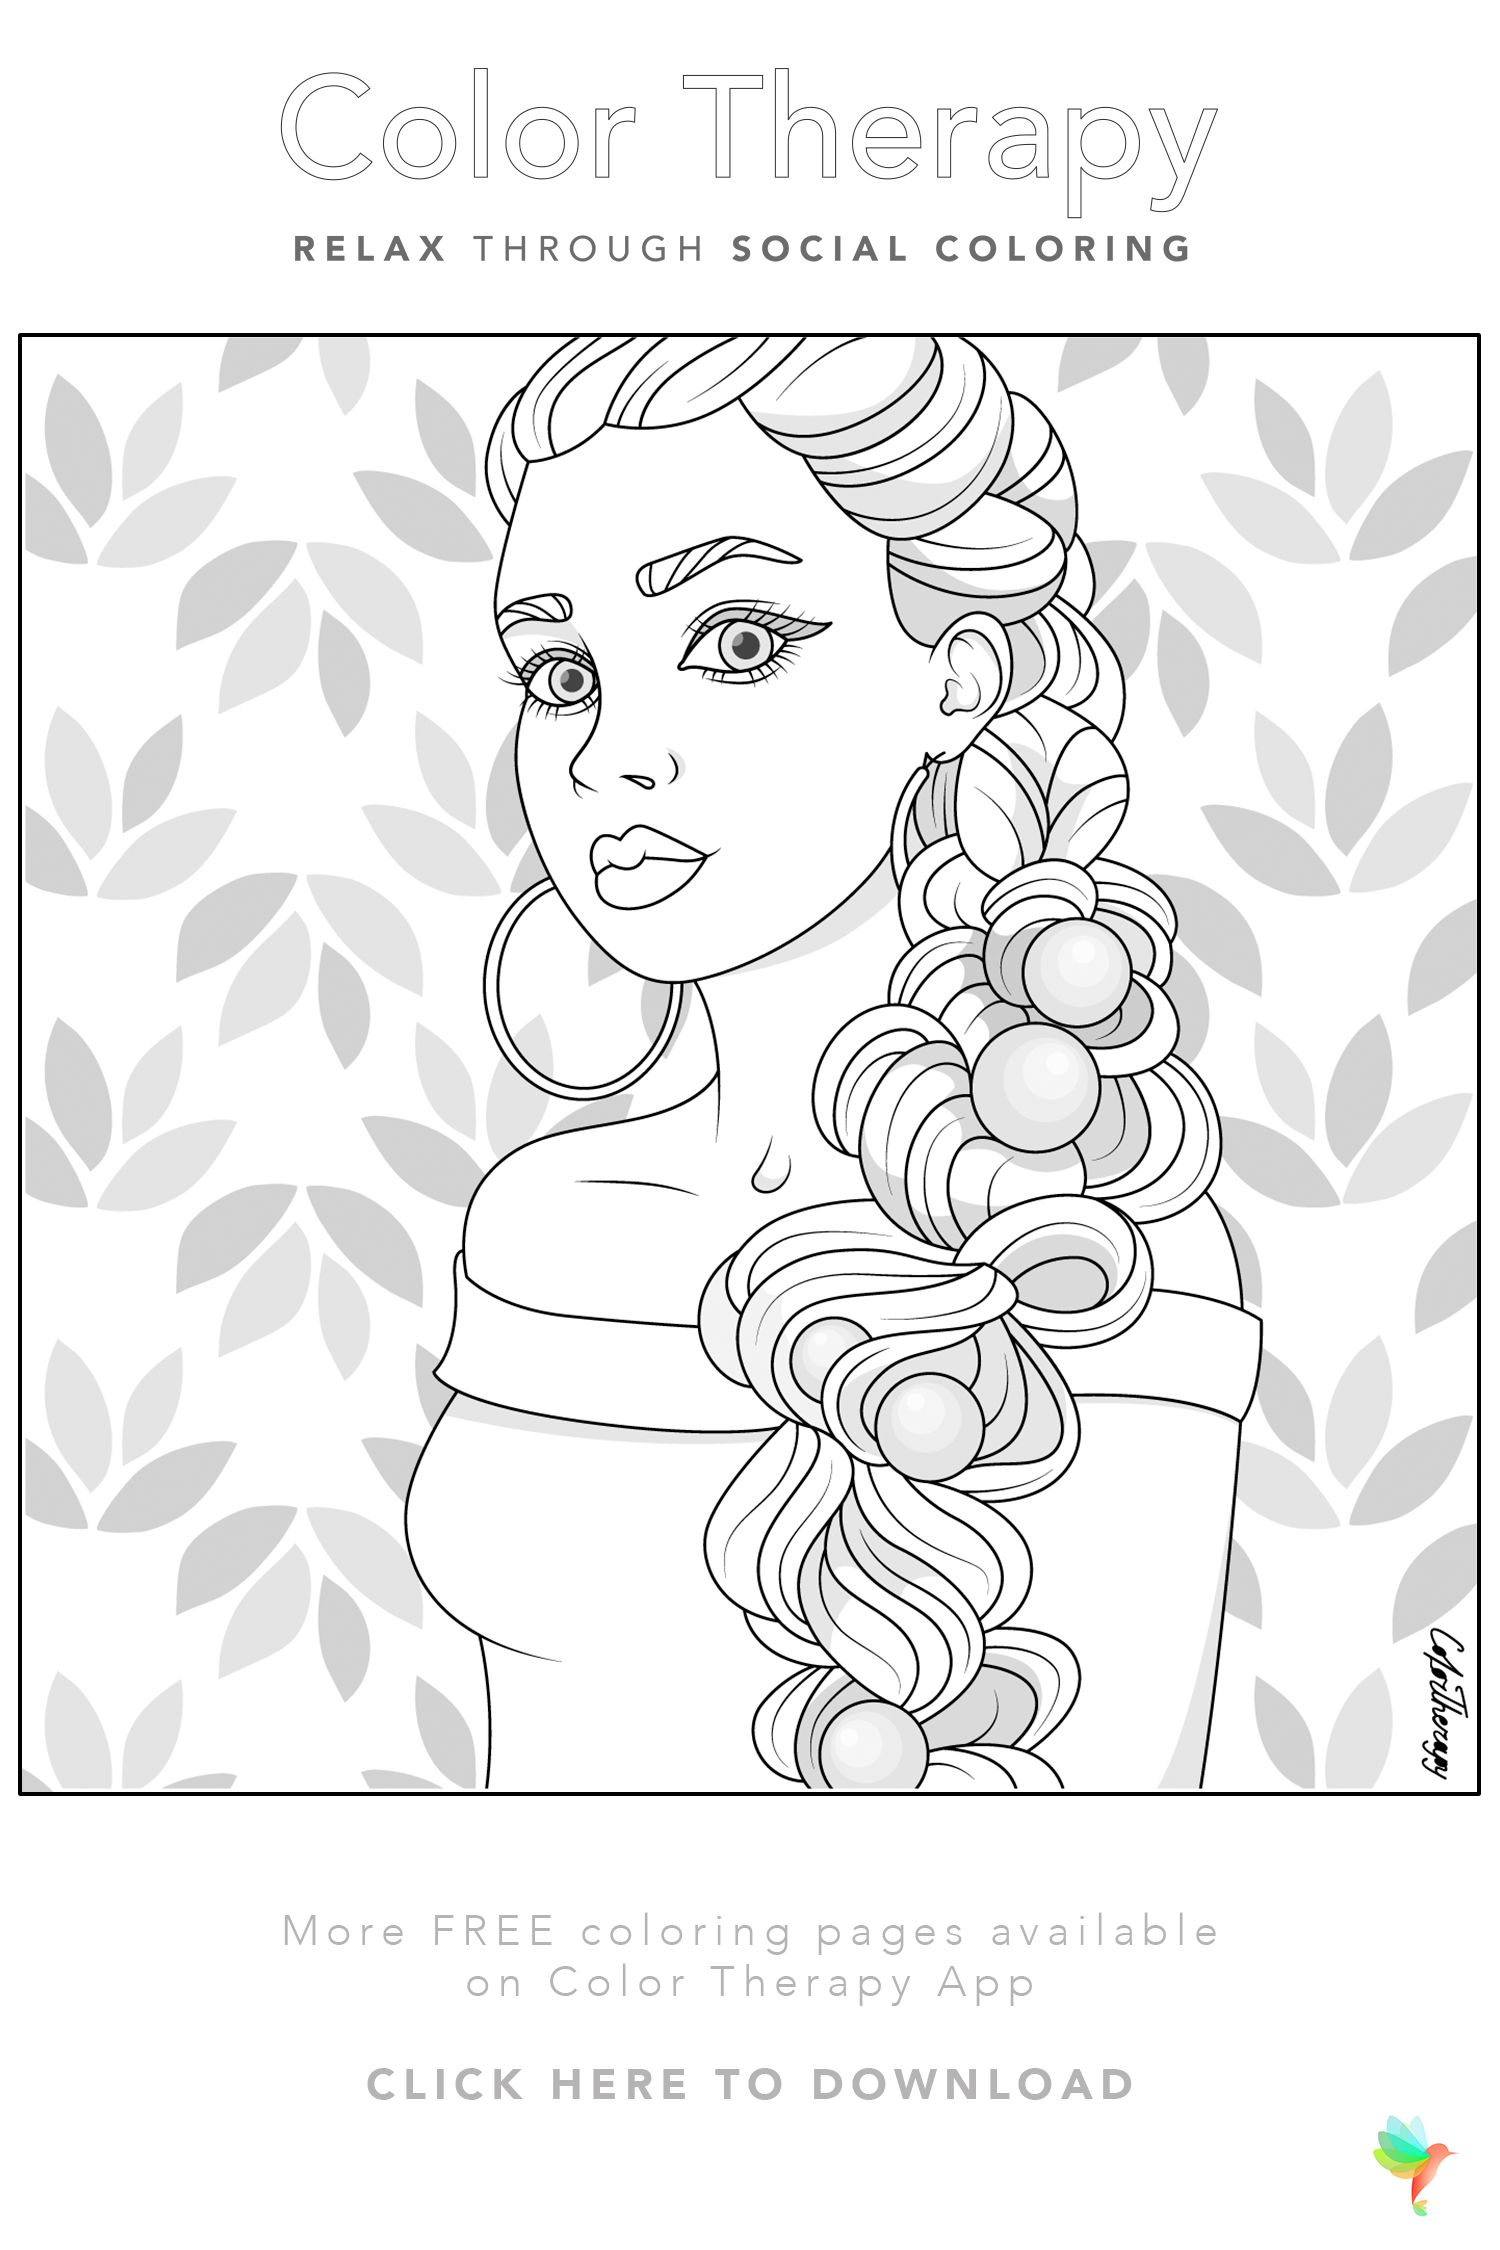 Color Therapy Gift Of The Day Free Coloring Template Coloring Pages For Girls Free Coloring Pages Coloring Book Art